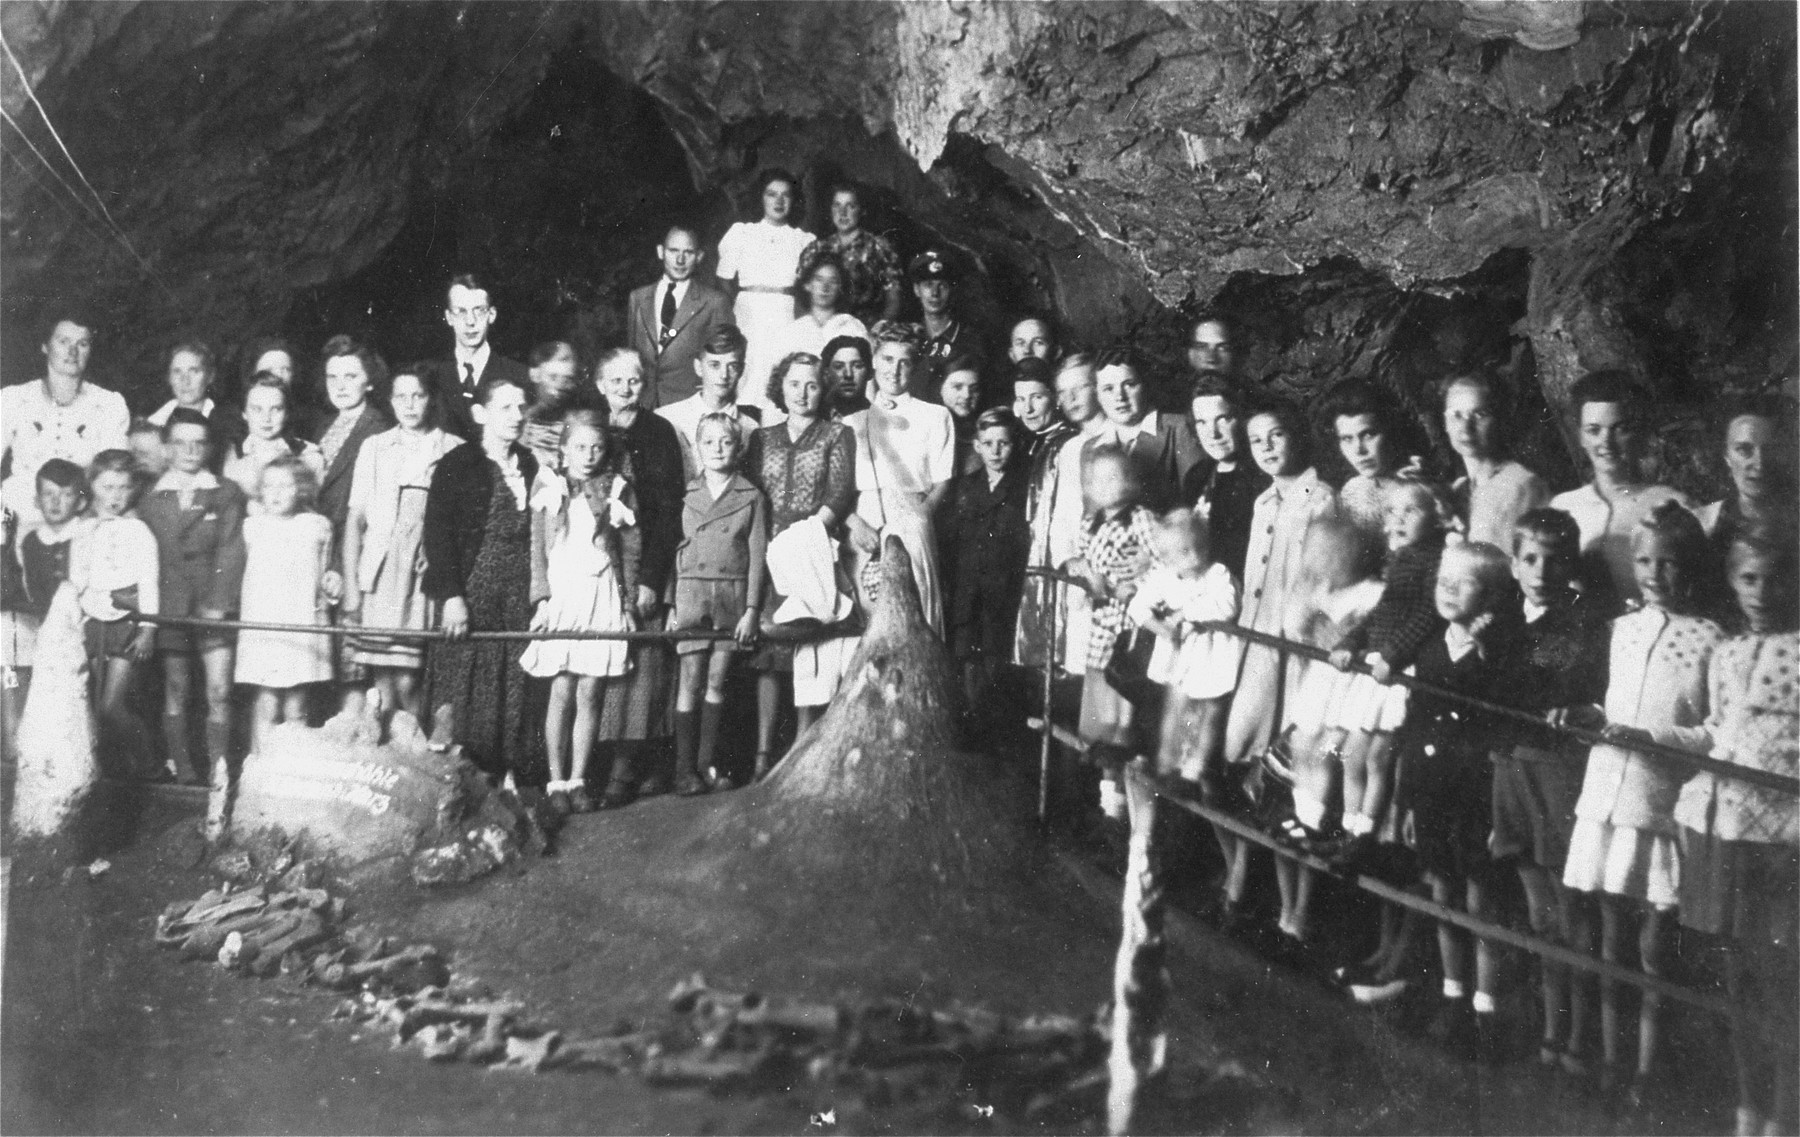 Group portrait of Germans on a field trip to a cavern in the Harz mountains.    Among those pictured is Solly Perel (middle, marked by arrow), a Jew living in hiding as a member of the Hitler Youth.  The field trip was hosted by a German SS officer who worked at the Hitler Youth school in Braunschweig.